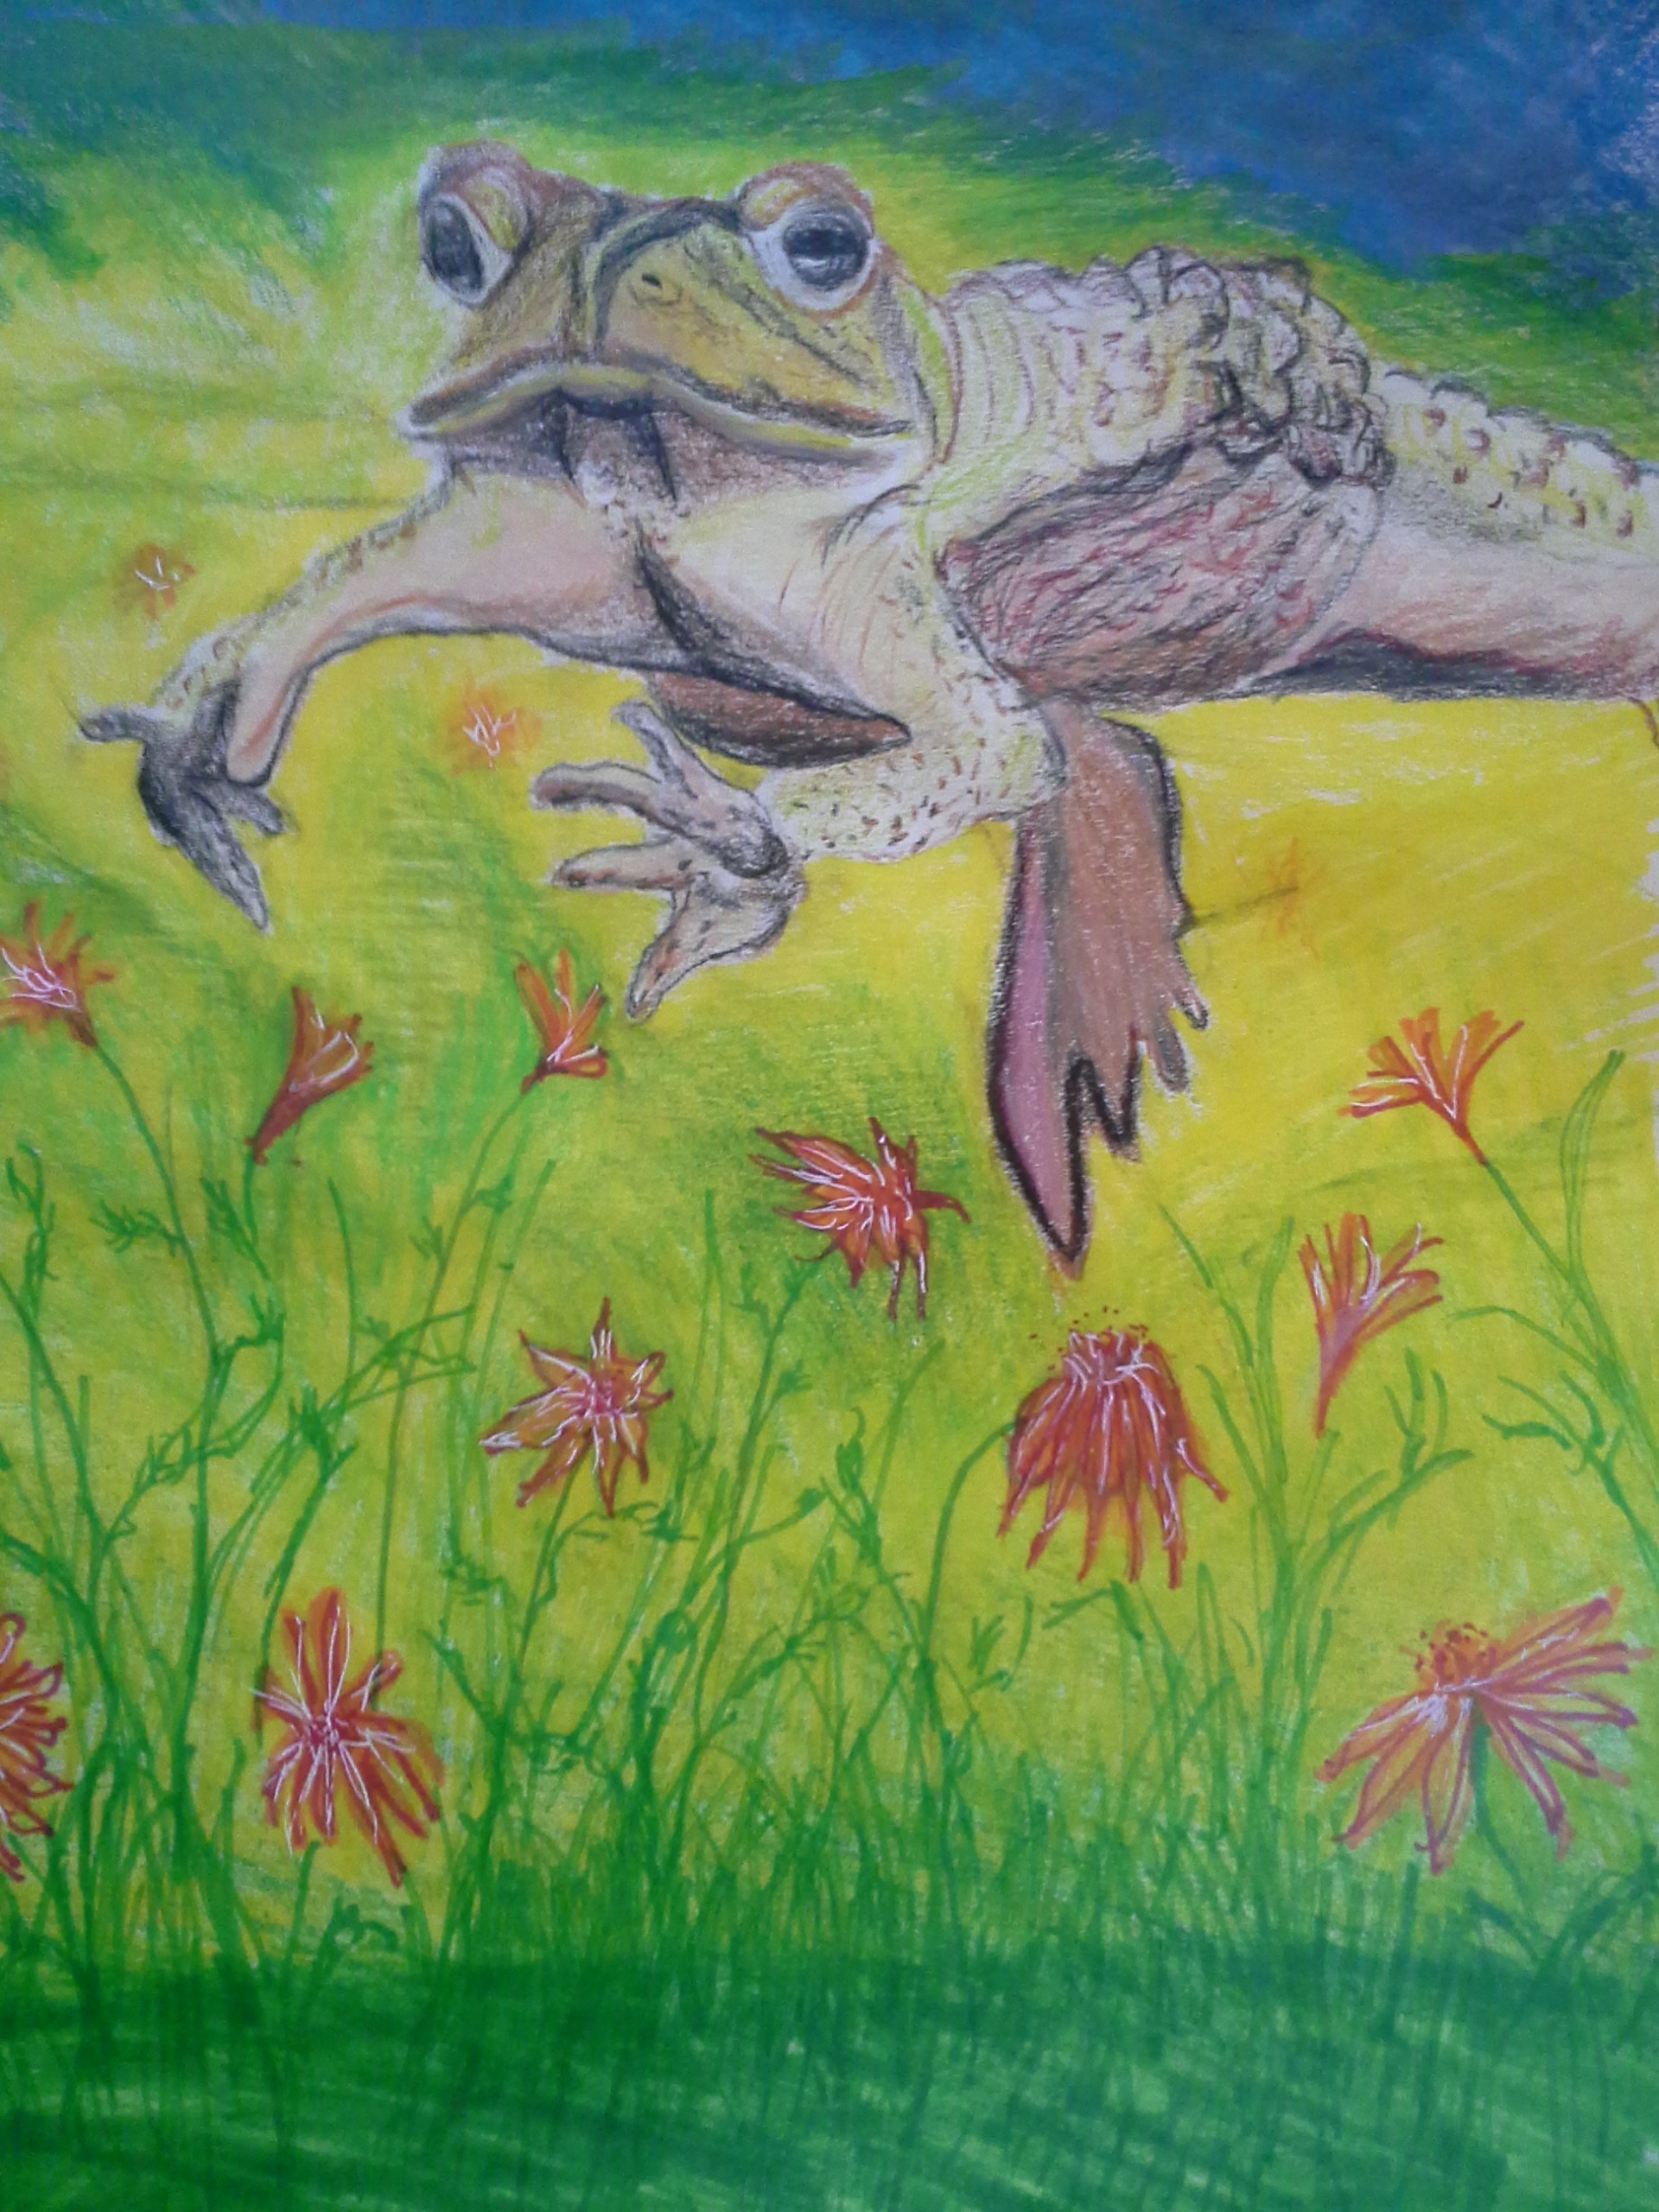 image of a frog in a meadow